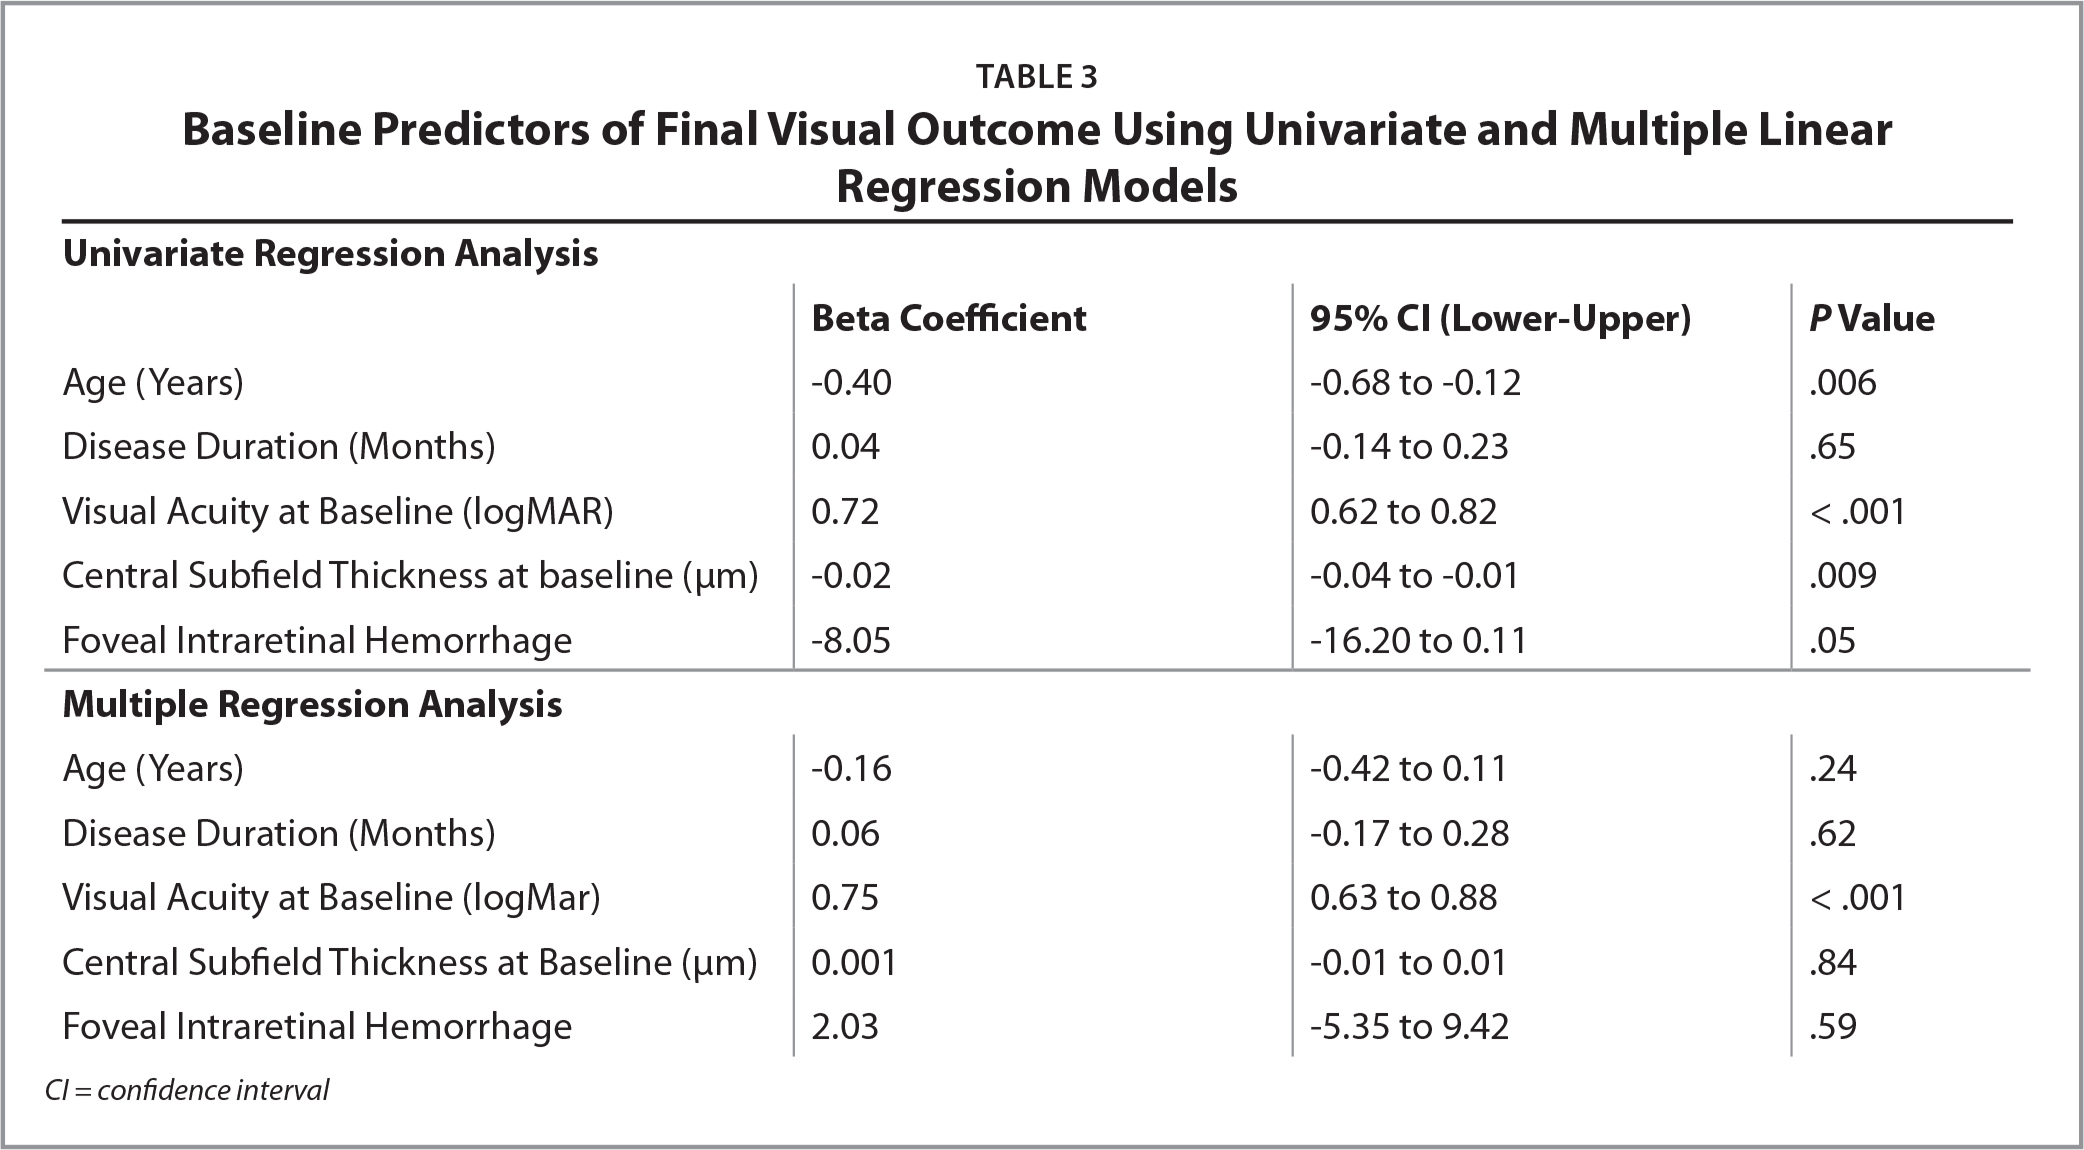 Baseline Predictors of Final Visual Outcome Using Univariate and Multiple Linear Regression Models